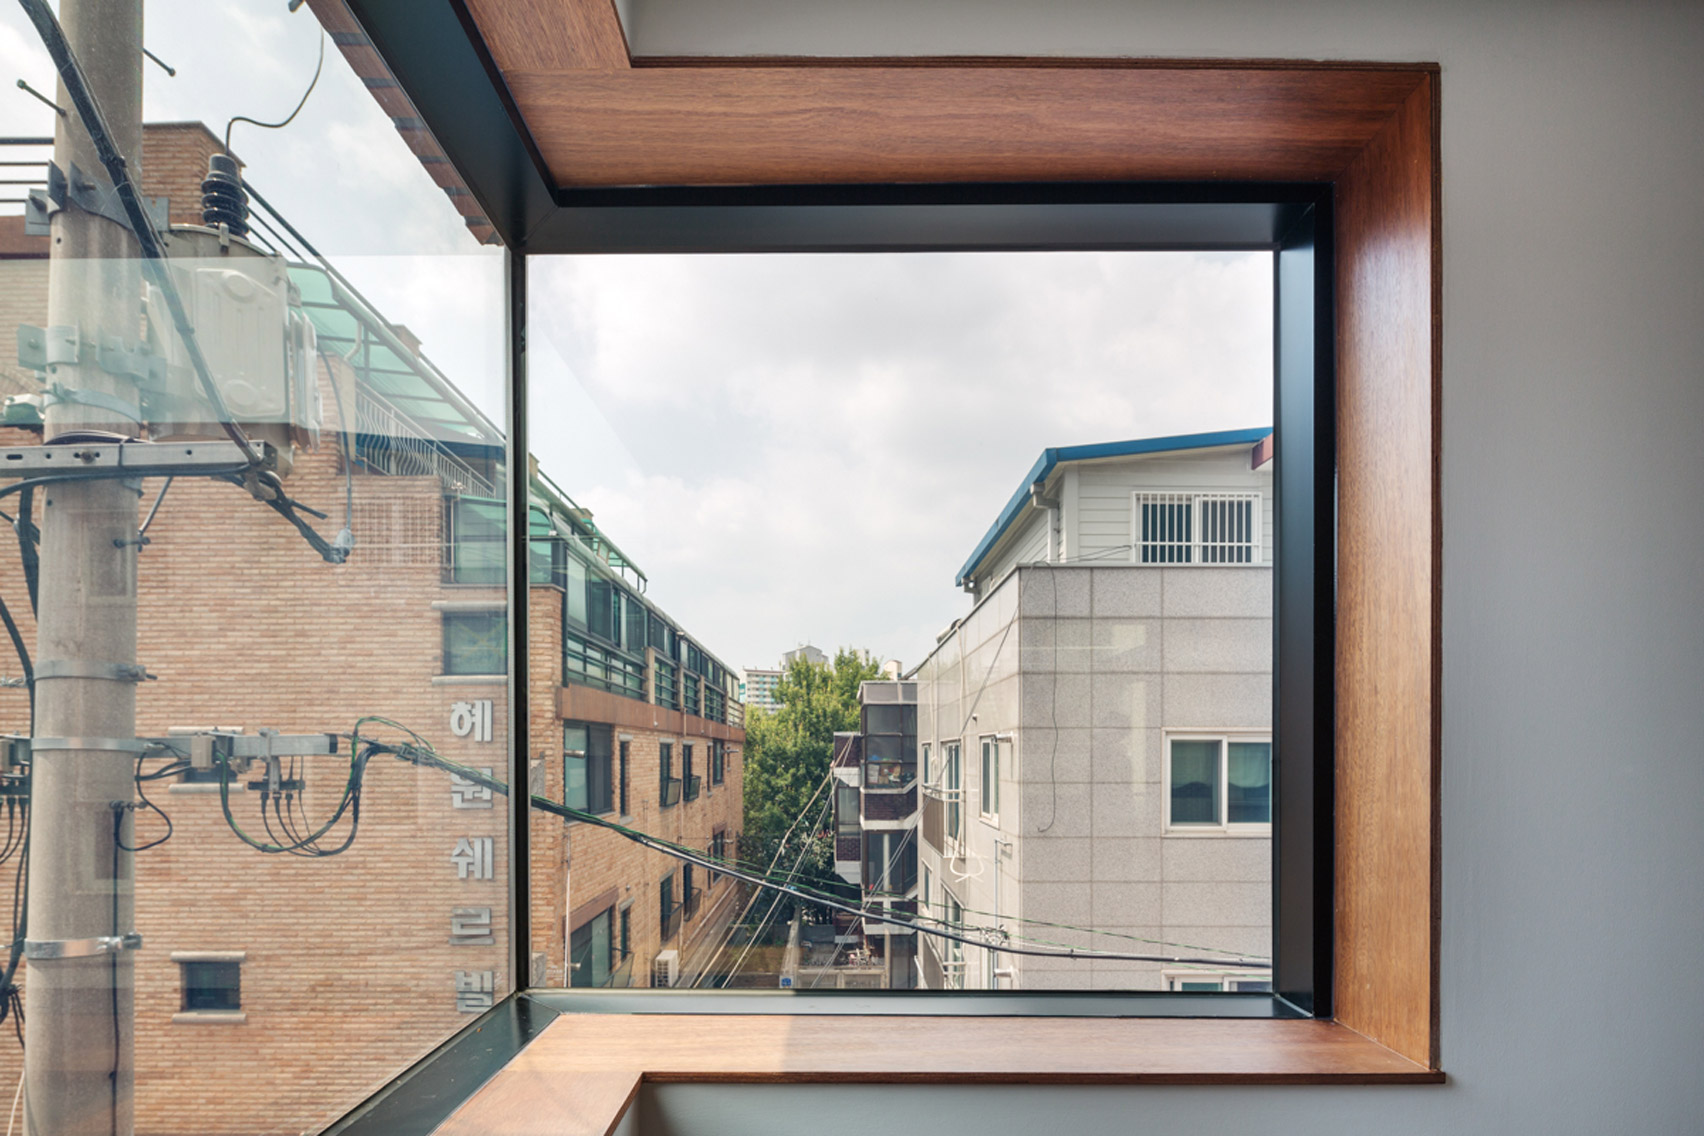 grown-house-fhhh-friends-architecture-residential-seoul-south-korea_dezeen_1704_col_1